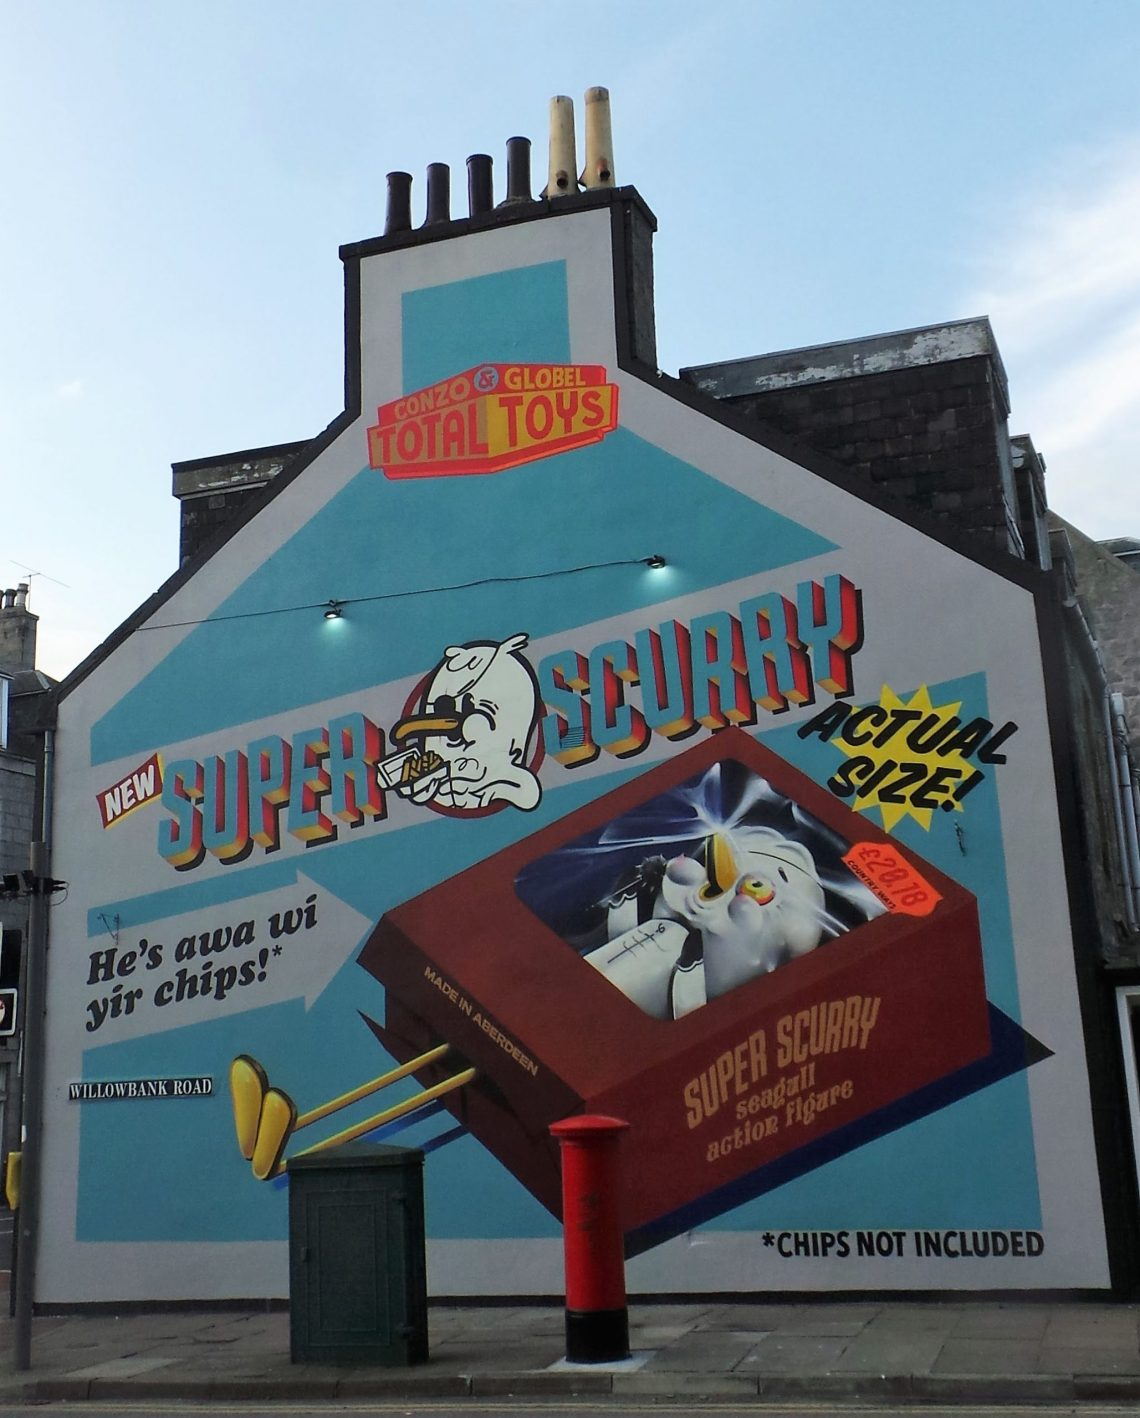 Super Scurry mural by Conzo & Globel for Nuart Aberdeen 2018